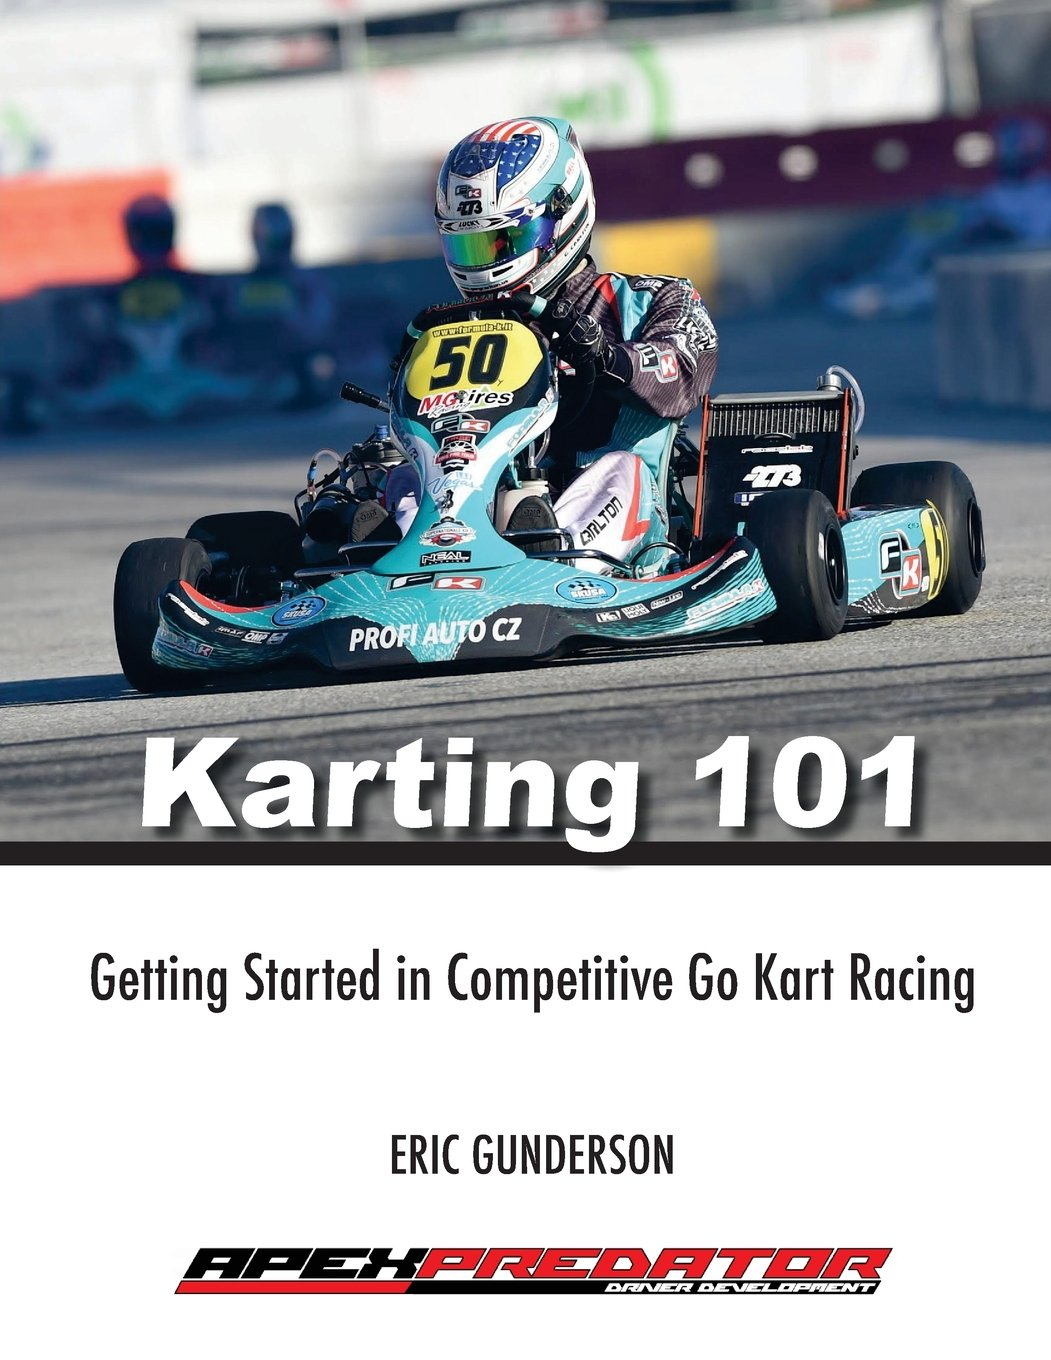 Karting 101: Getting Started in Competitive Go Kart Racing